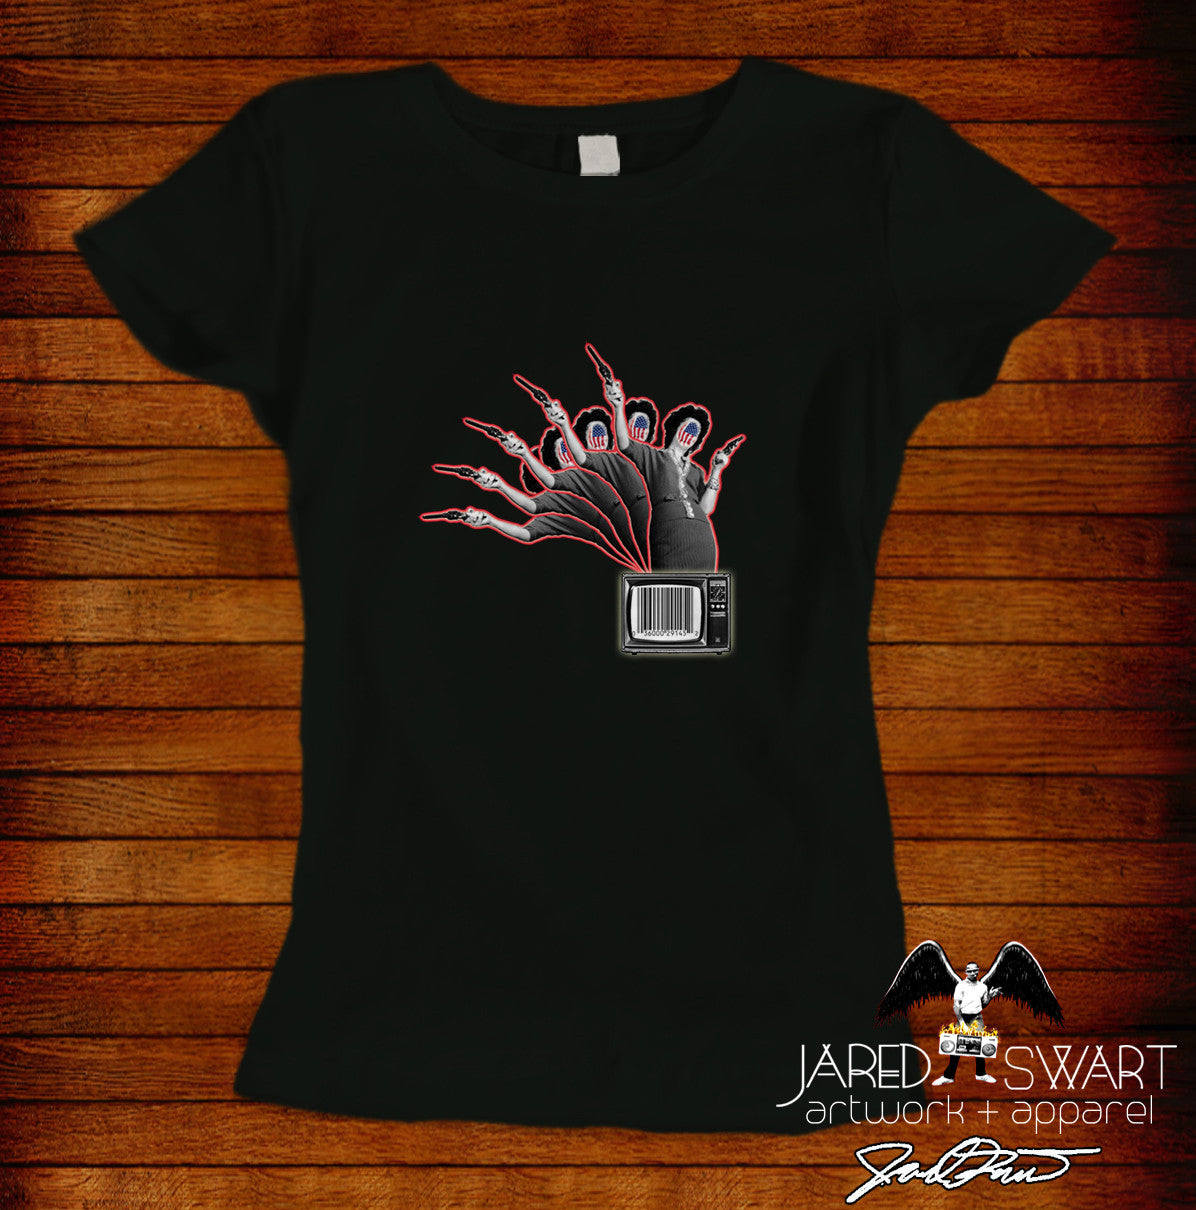 Party USA - Jared Swart Signature Series Designer Tee